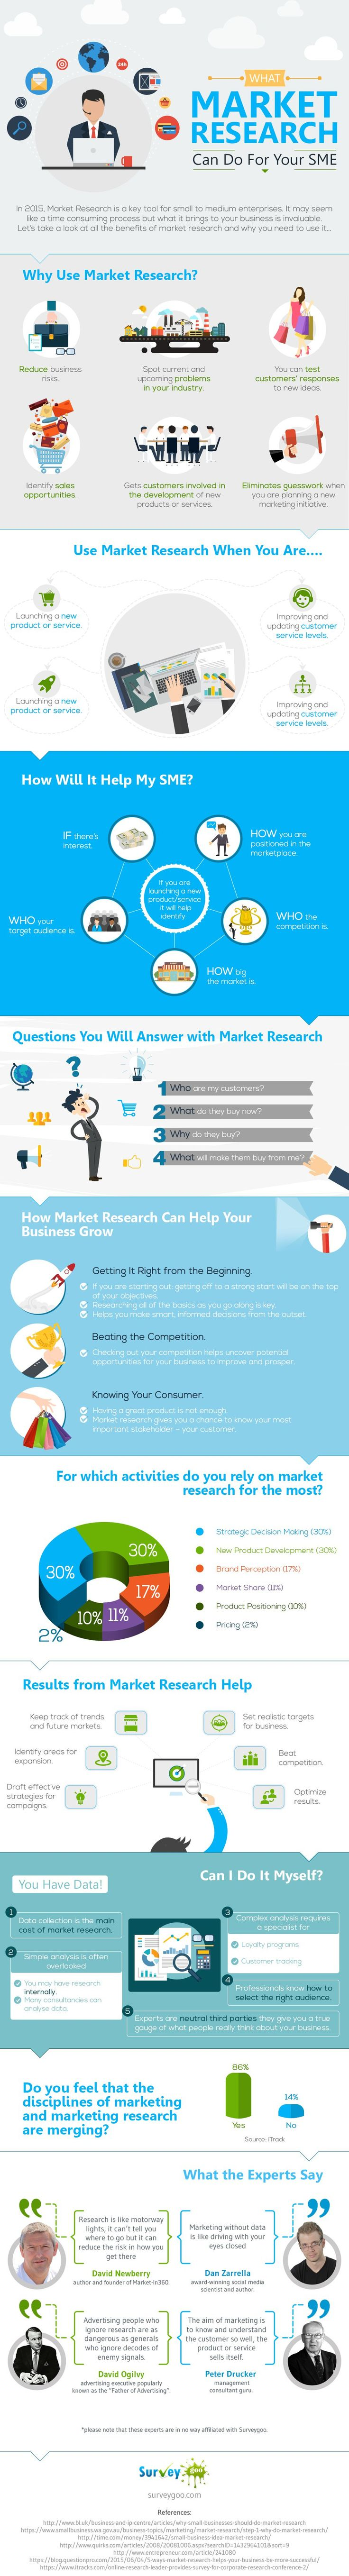 What Market Research Can Do for Your SME